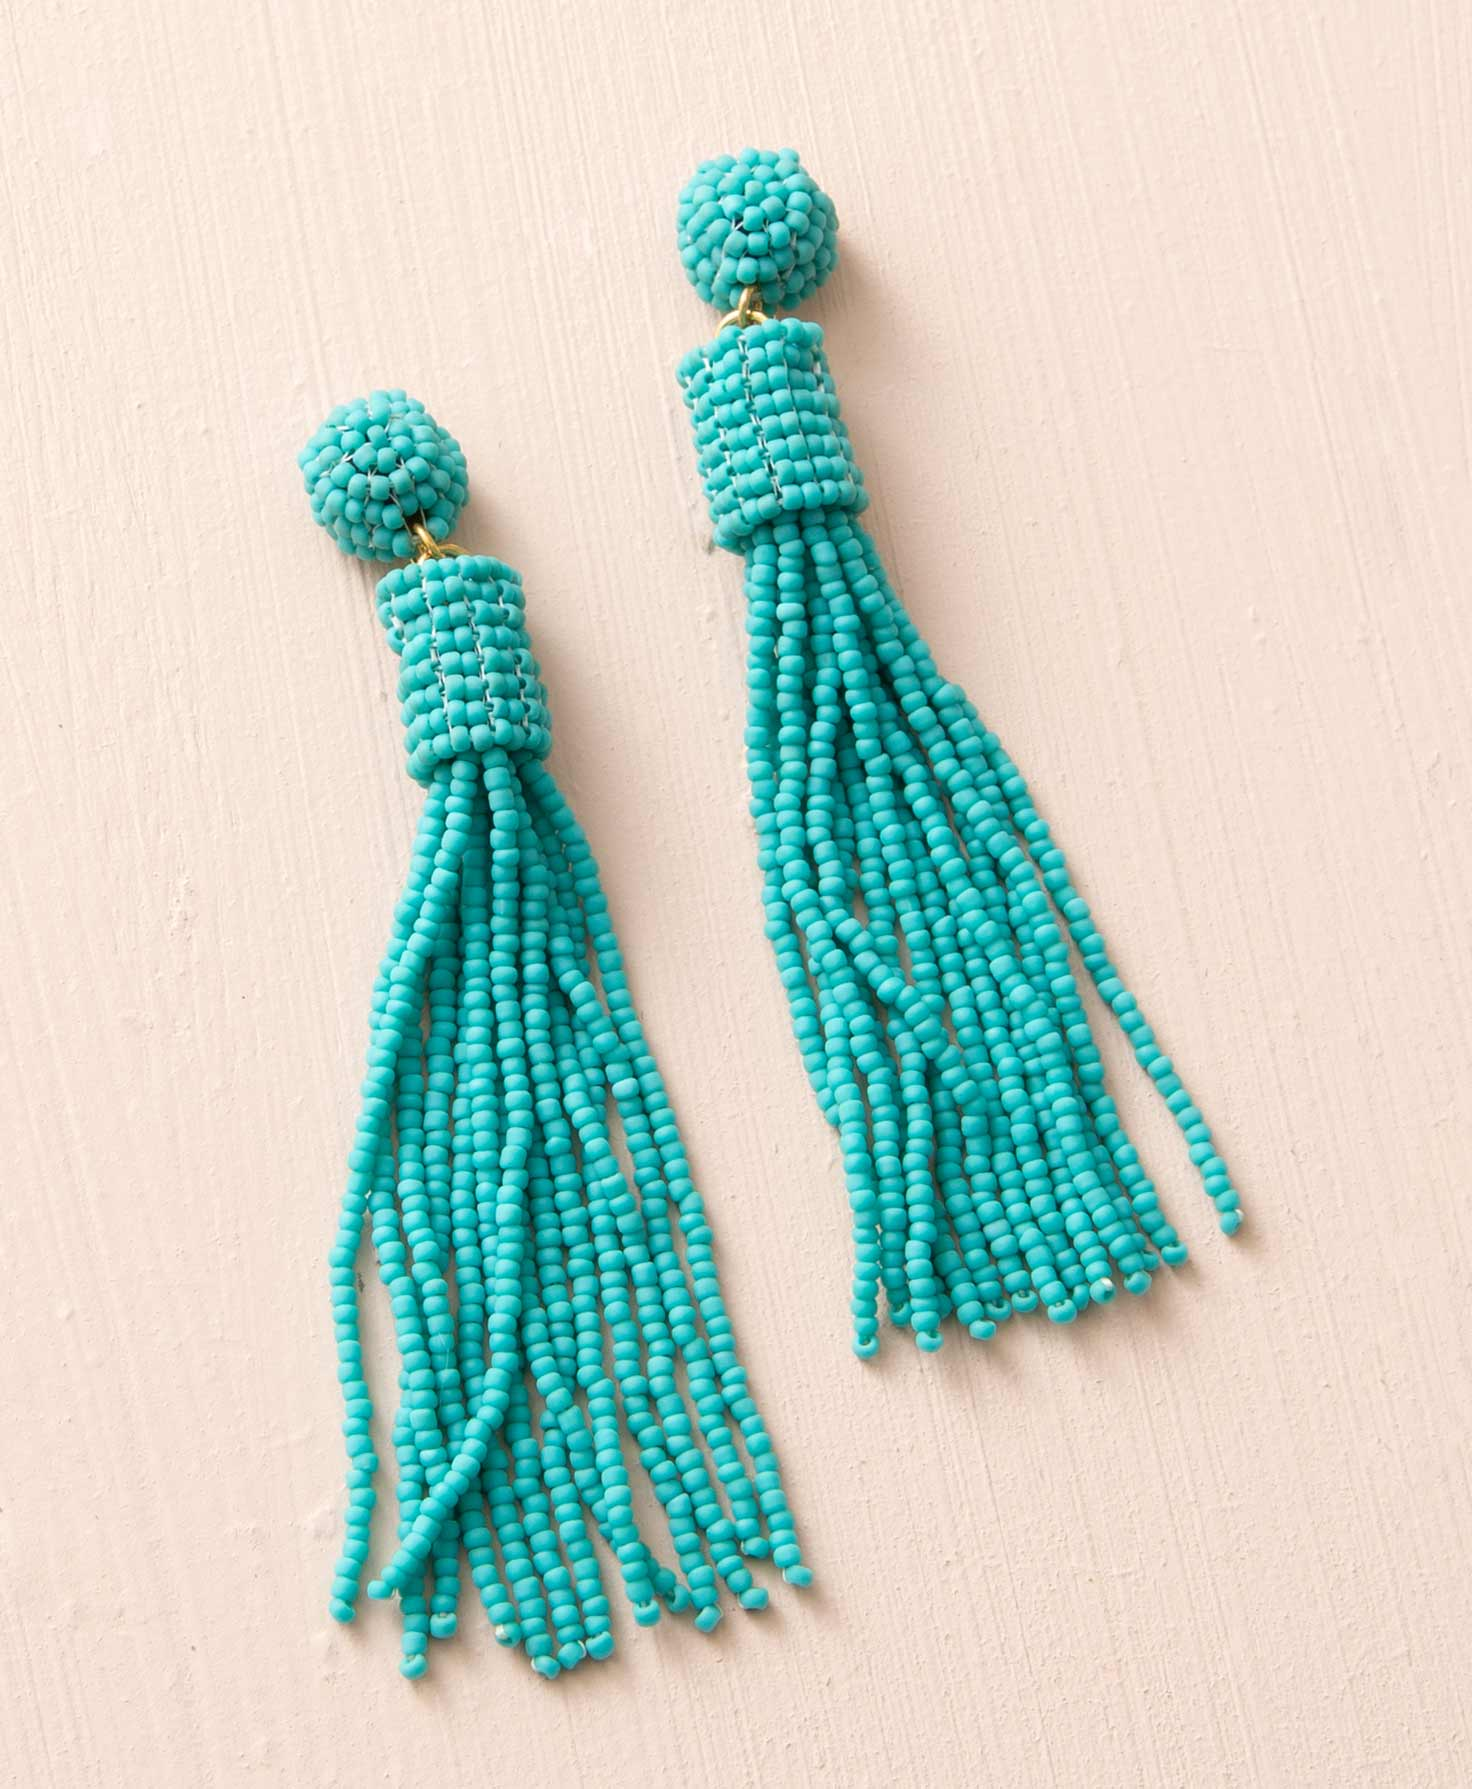 The Chime earrings lay against a cream background. They are chandelier-style earrings composed of teal glass beads. The posts are embellished with a ball made of these glass beads. Below, brass jump rings connect the post to a short tube of glass beads. Beneath this, around 15 long strands of glass beads swing down.